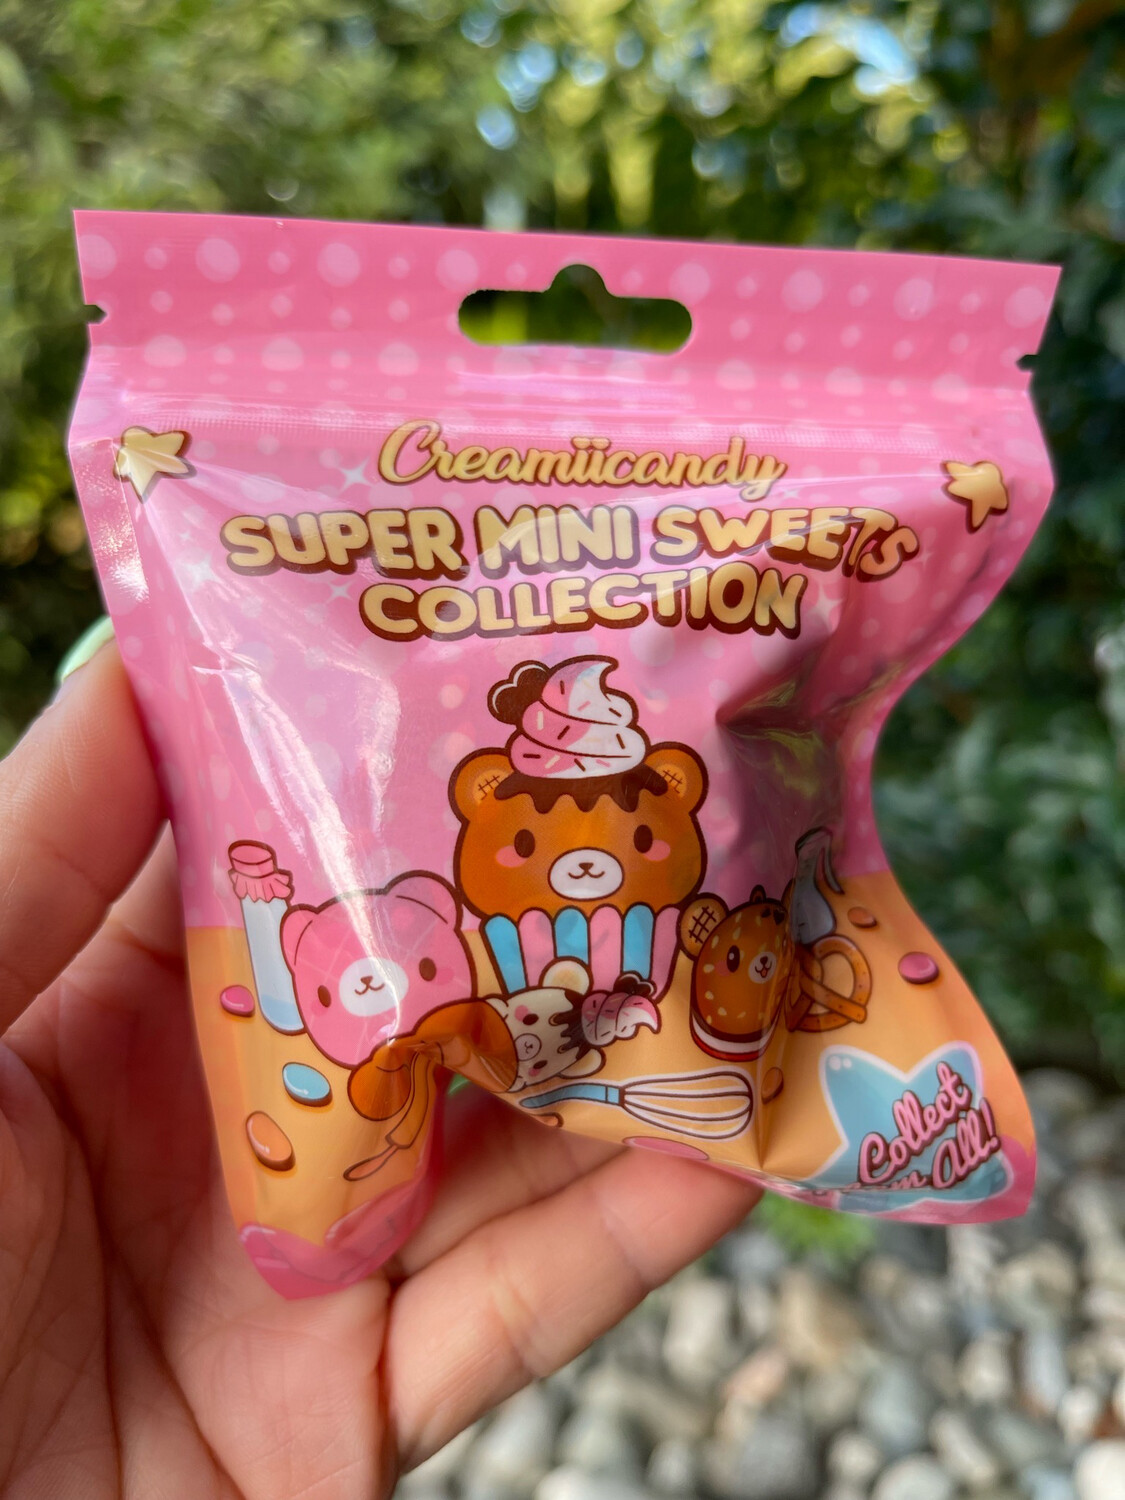 Creamiicandy Yummiibear Super Mini Sweets Collection Blind Bag Squishy Toy